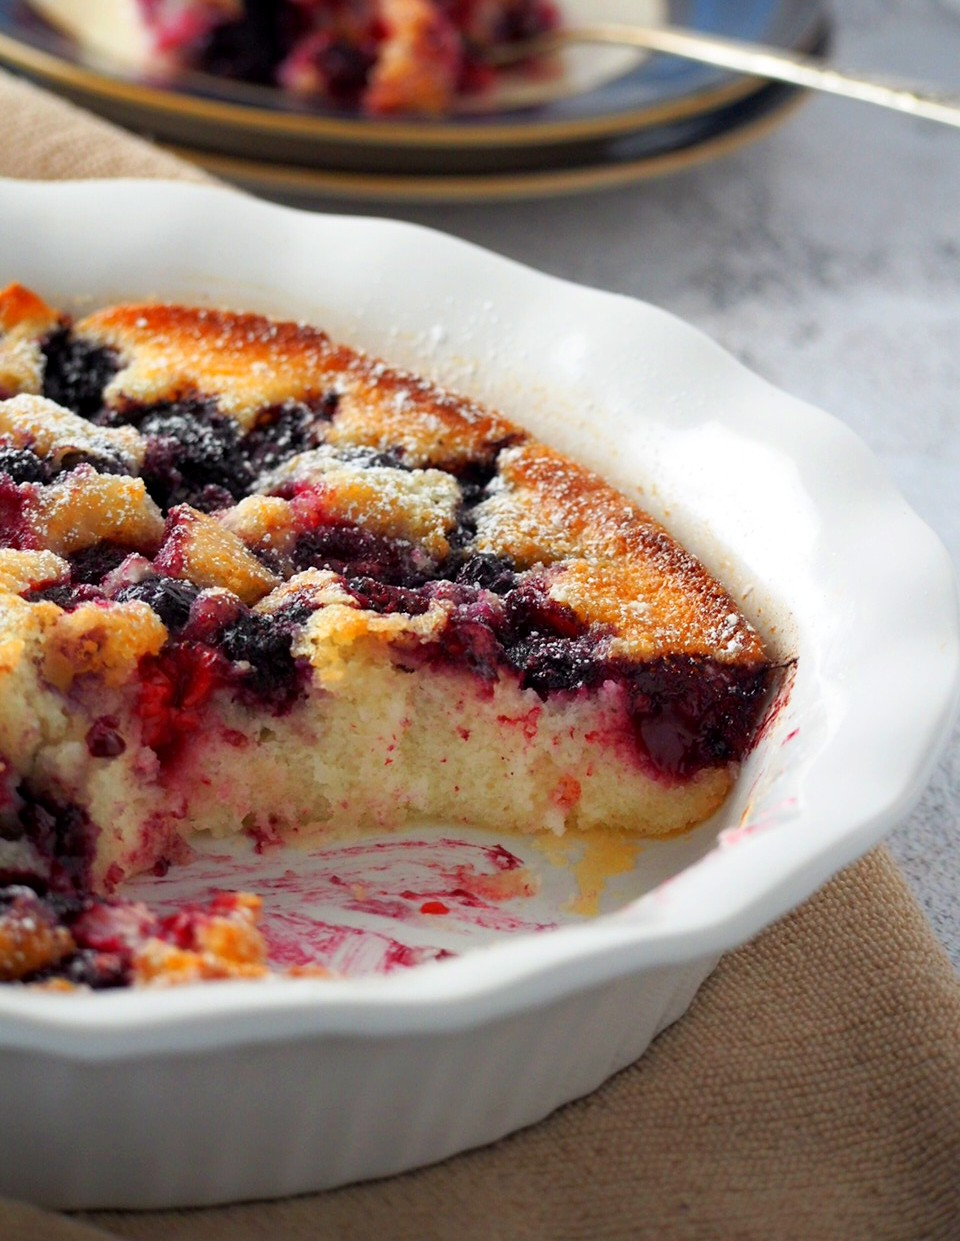 Easy berry cake served.